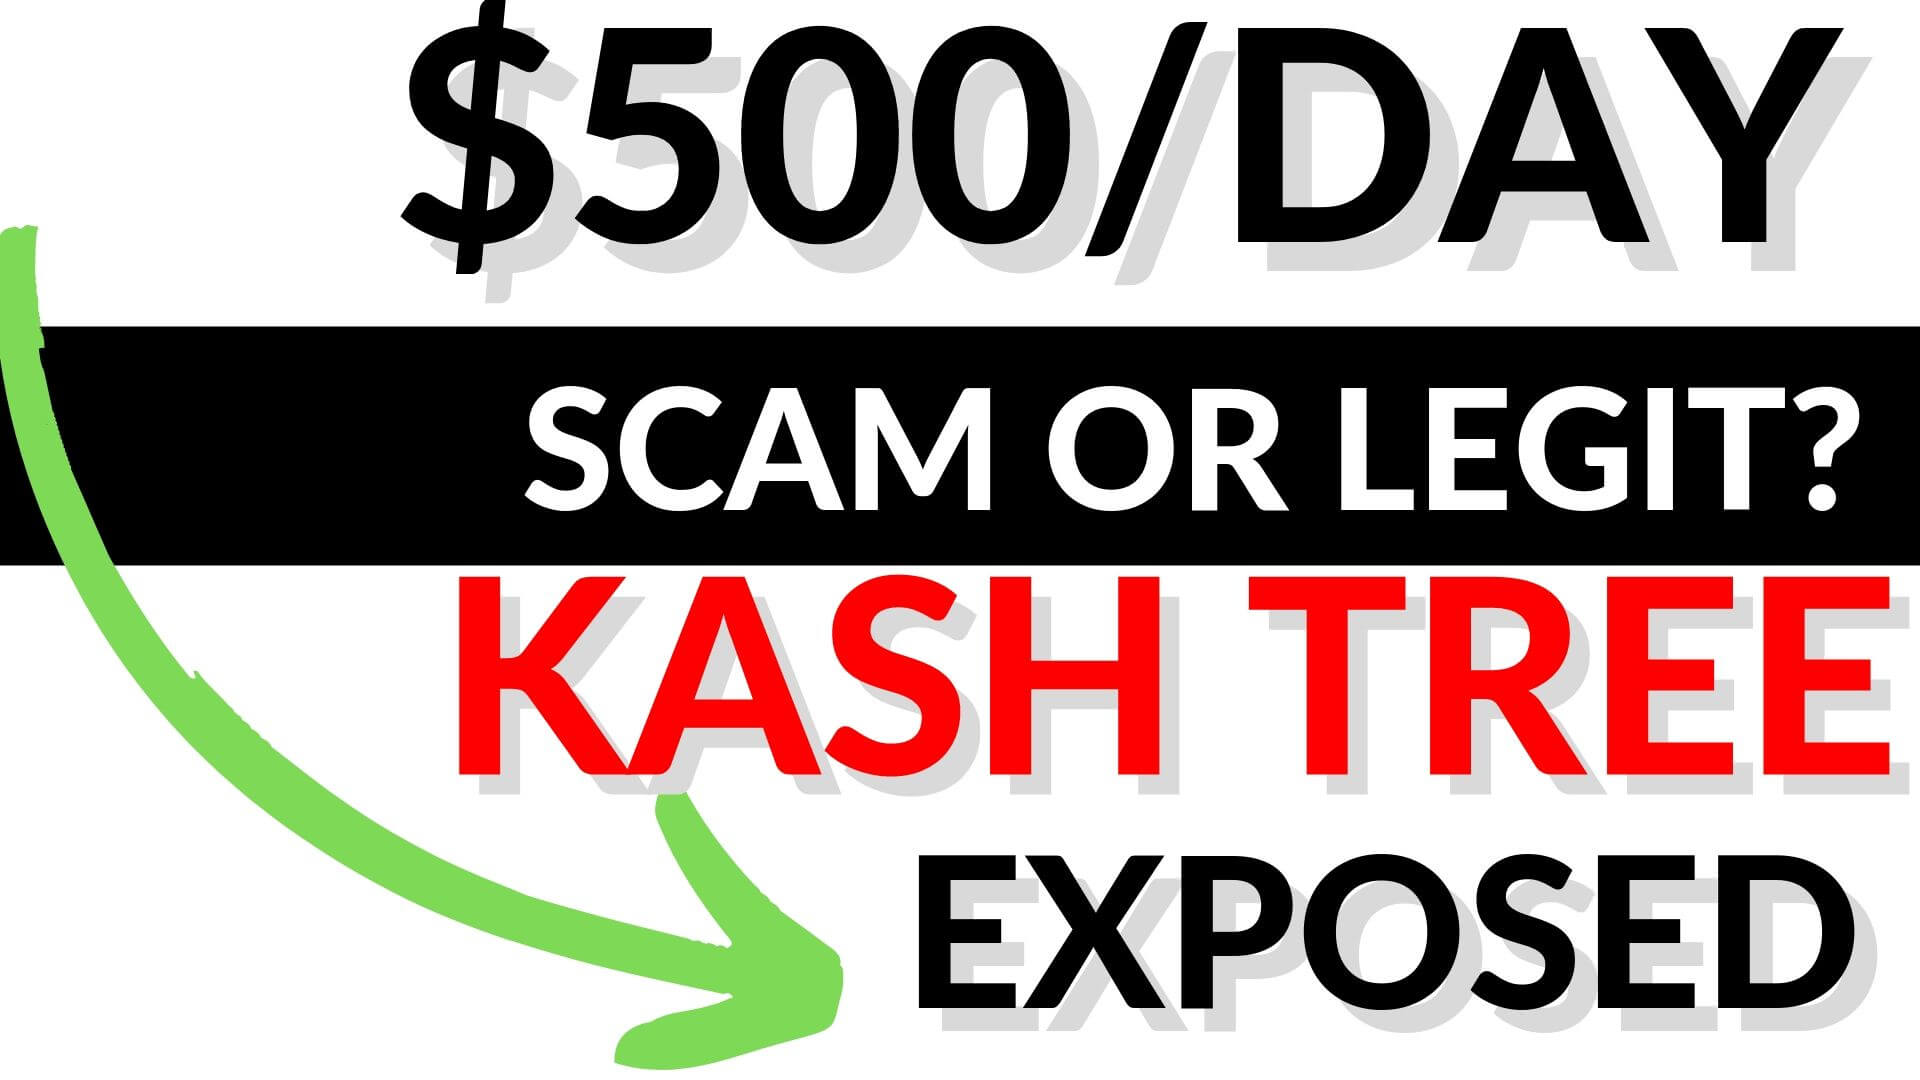 KashTree Scam Review